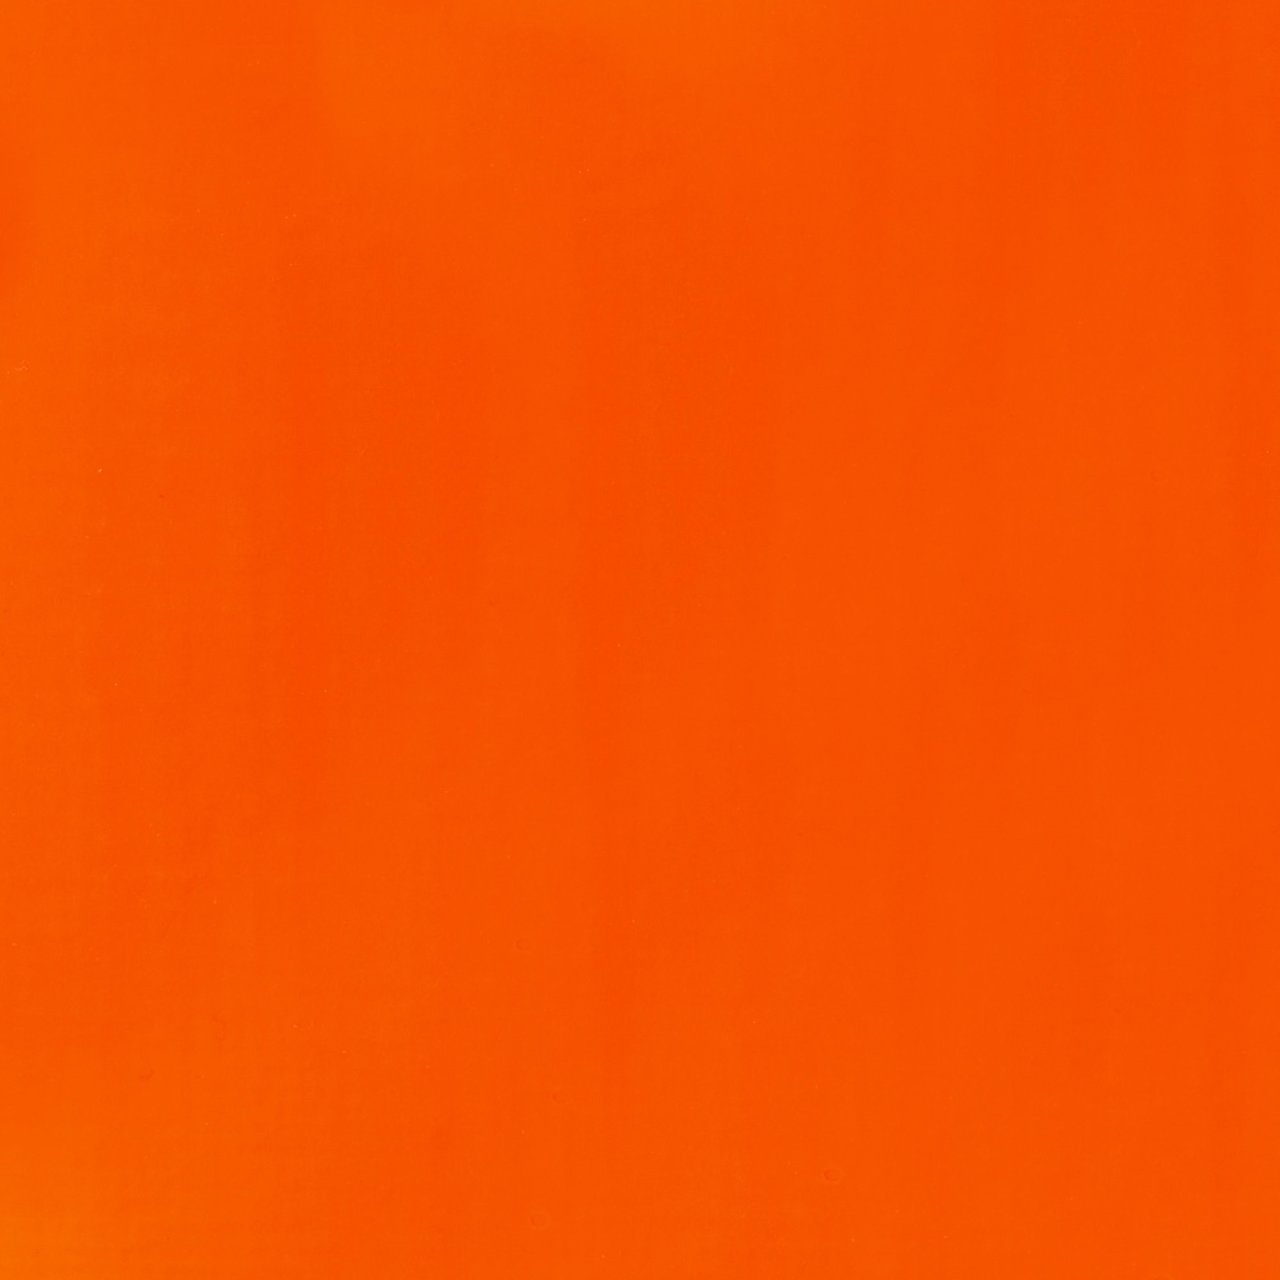 Liquitex Basics Acrylfarbe 118ml orange fluo von Liquitex